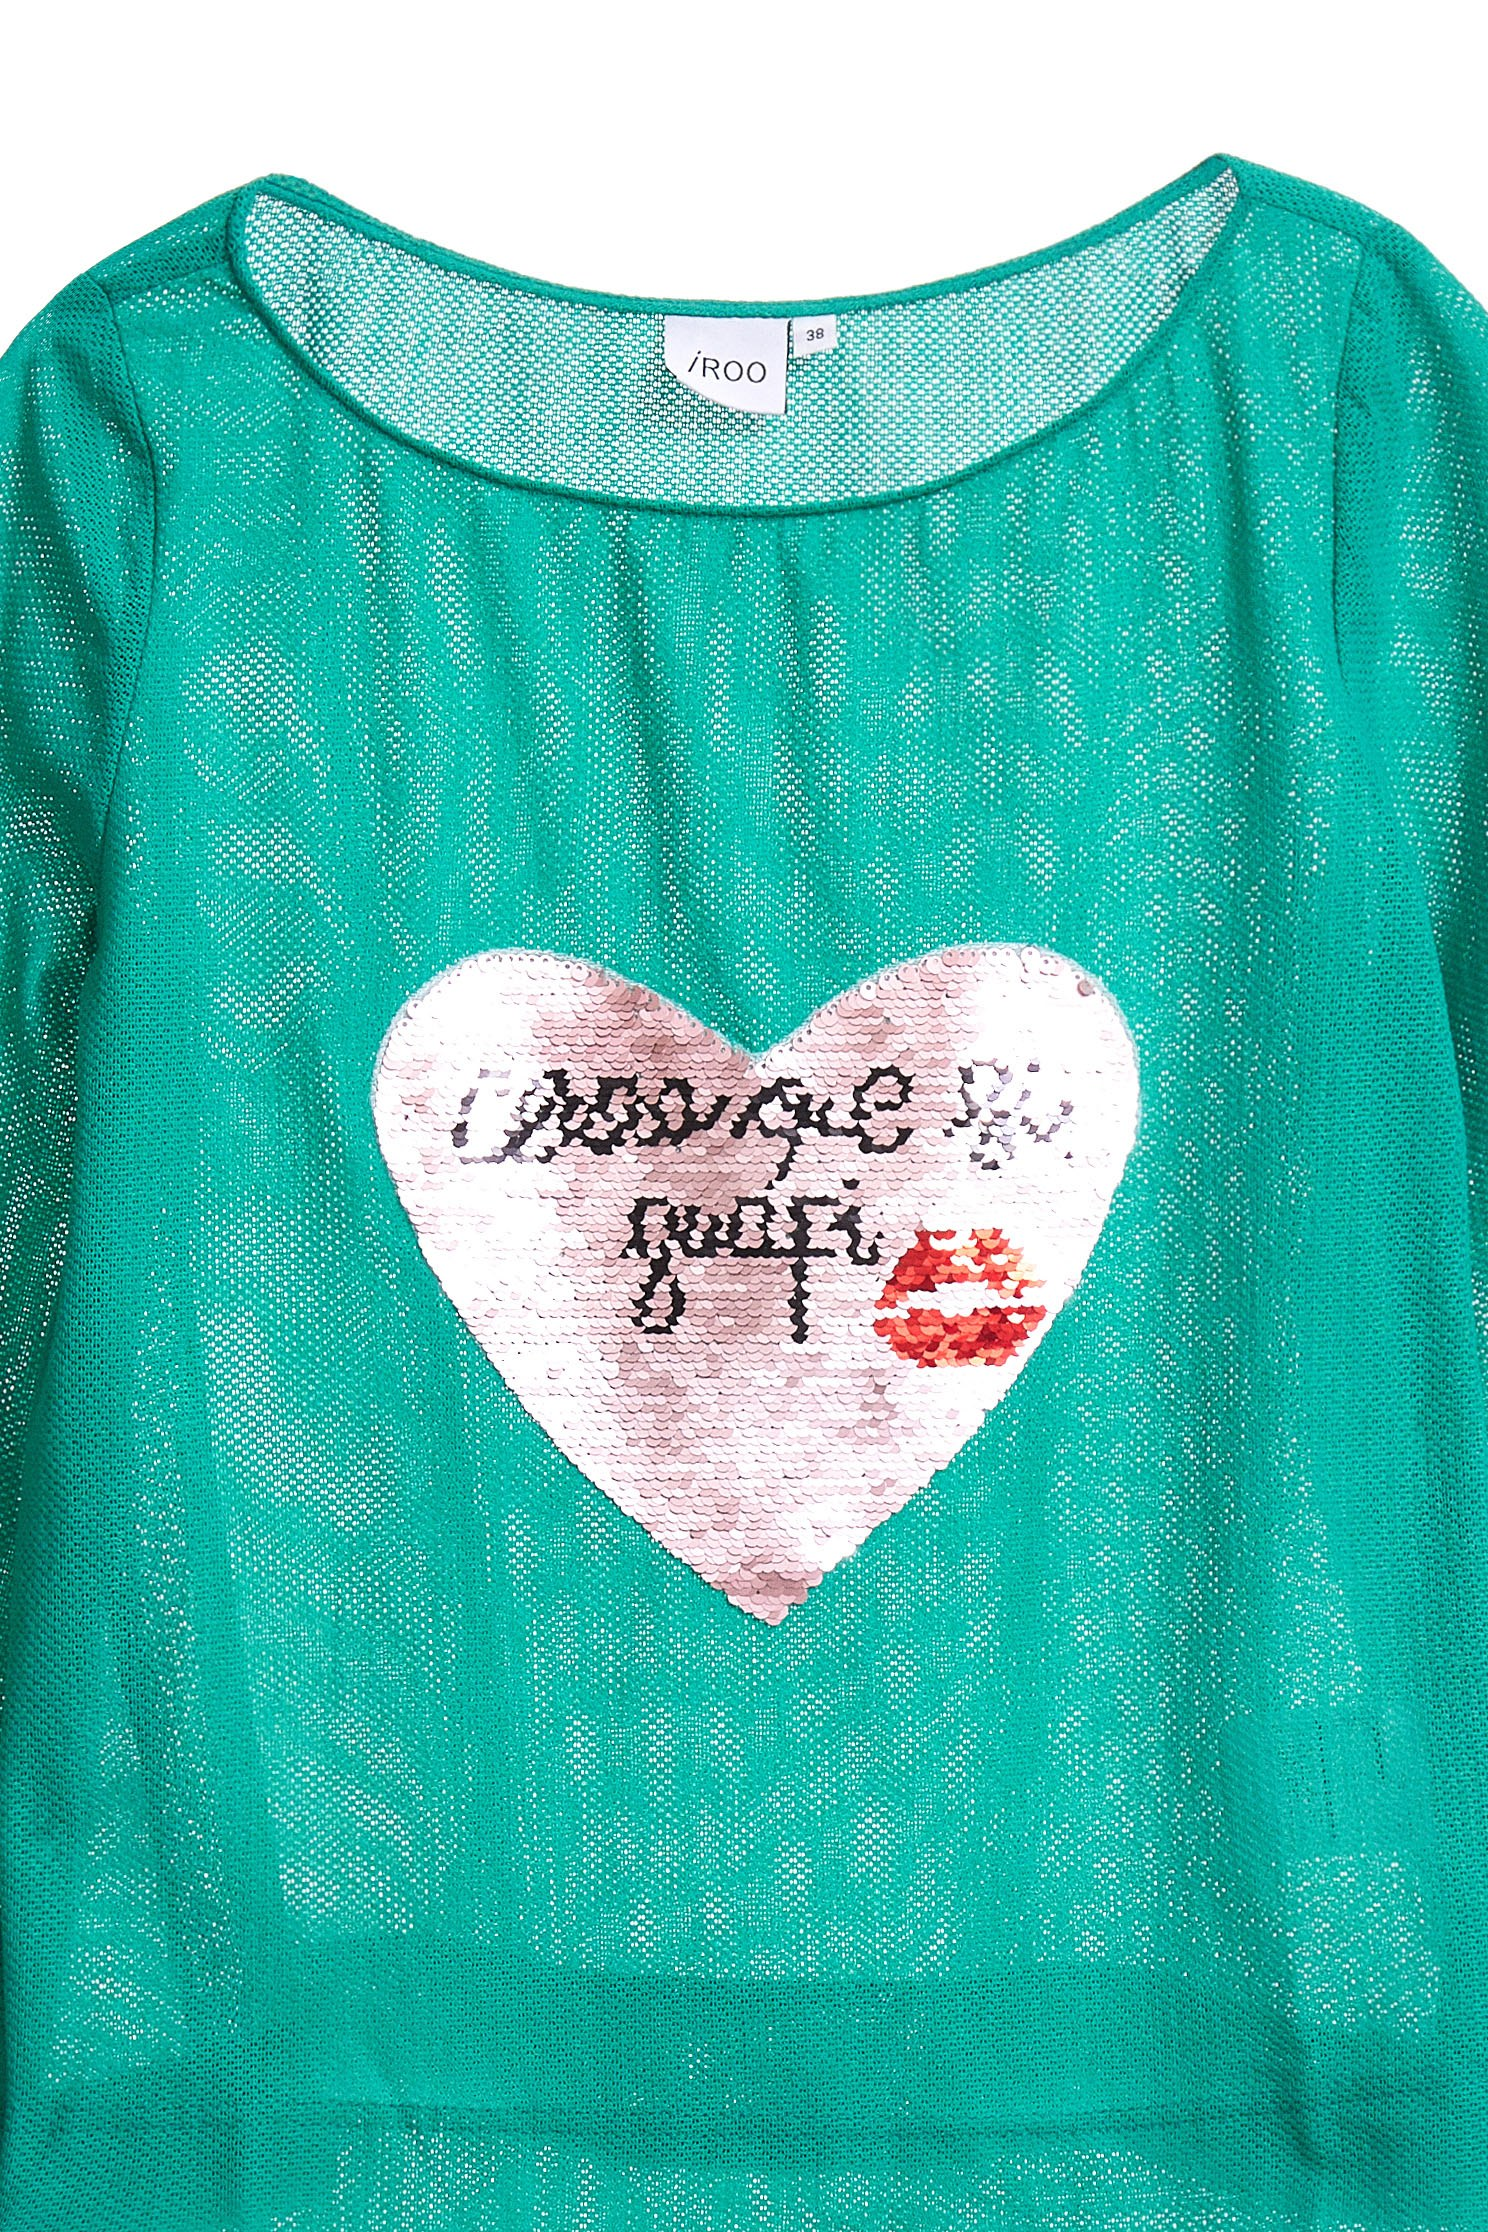 Wide collar top with heart printing,Top,長袖上衣